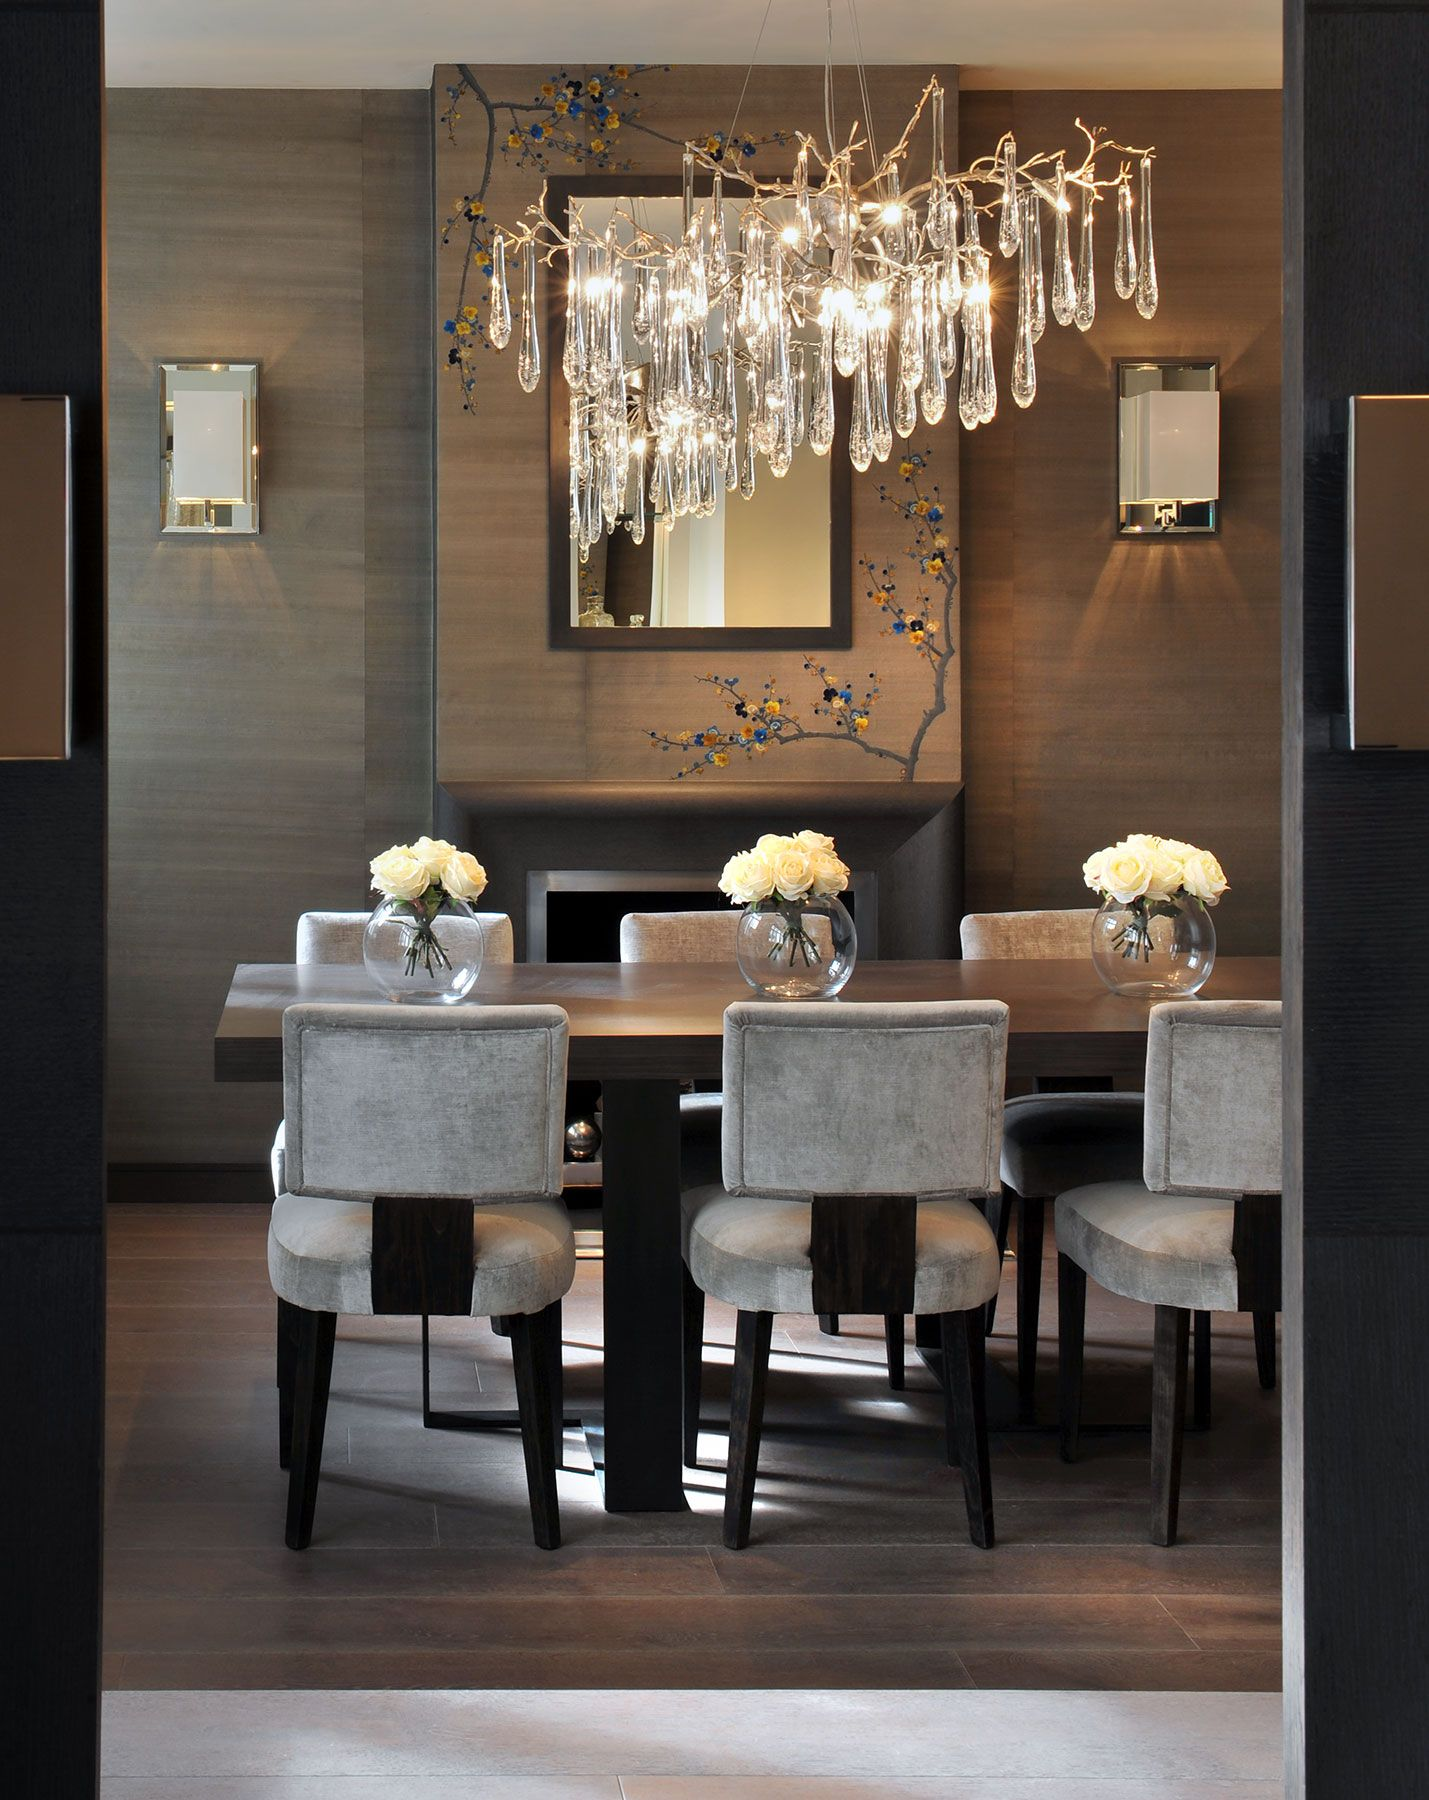 The Best Luxury Chandeliers For Your Living Room Bedroom Decorating IdeasDecorating BlogsDining